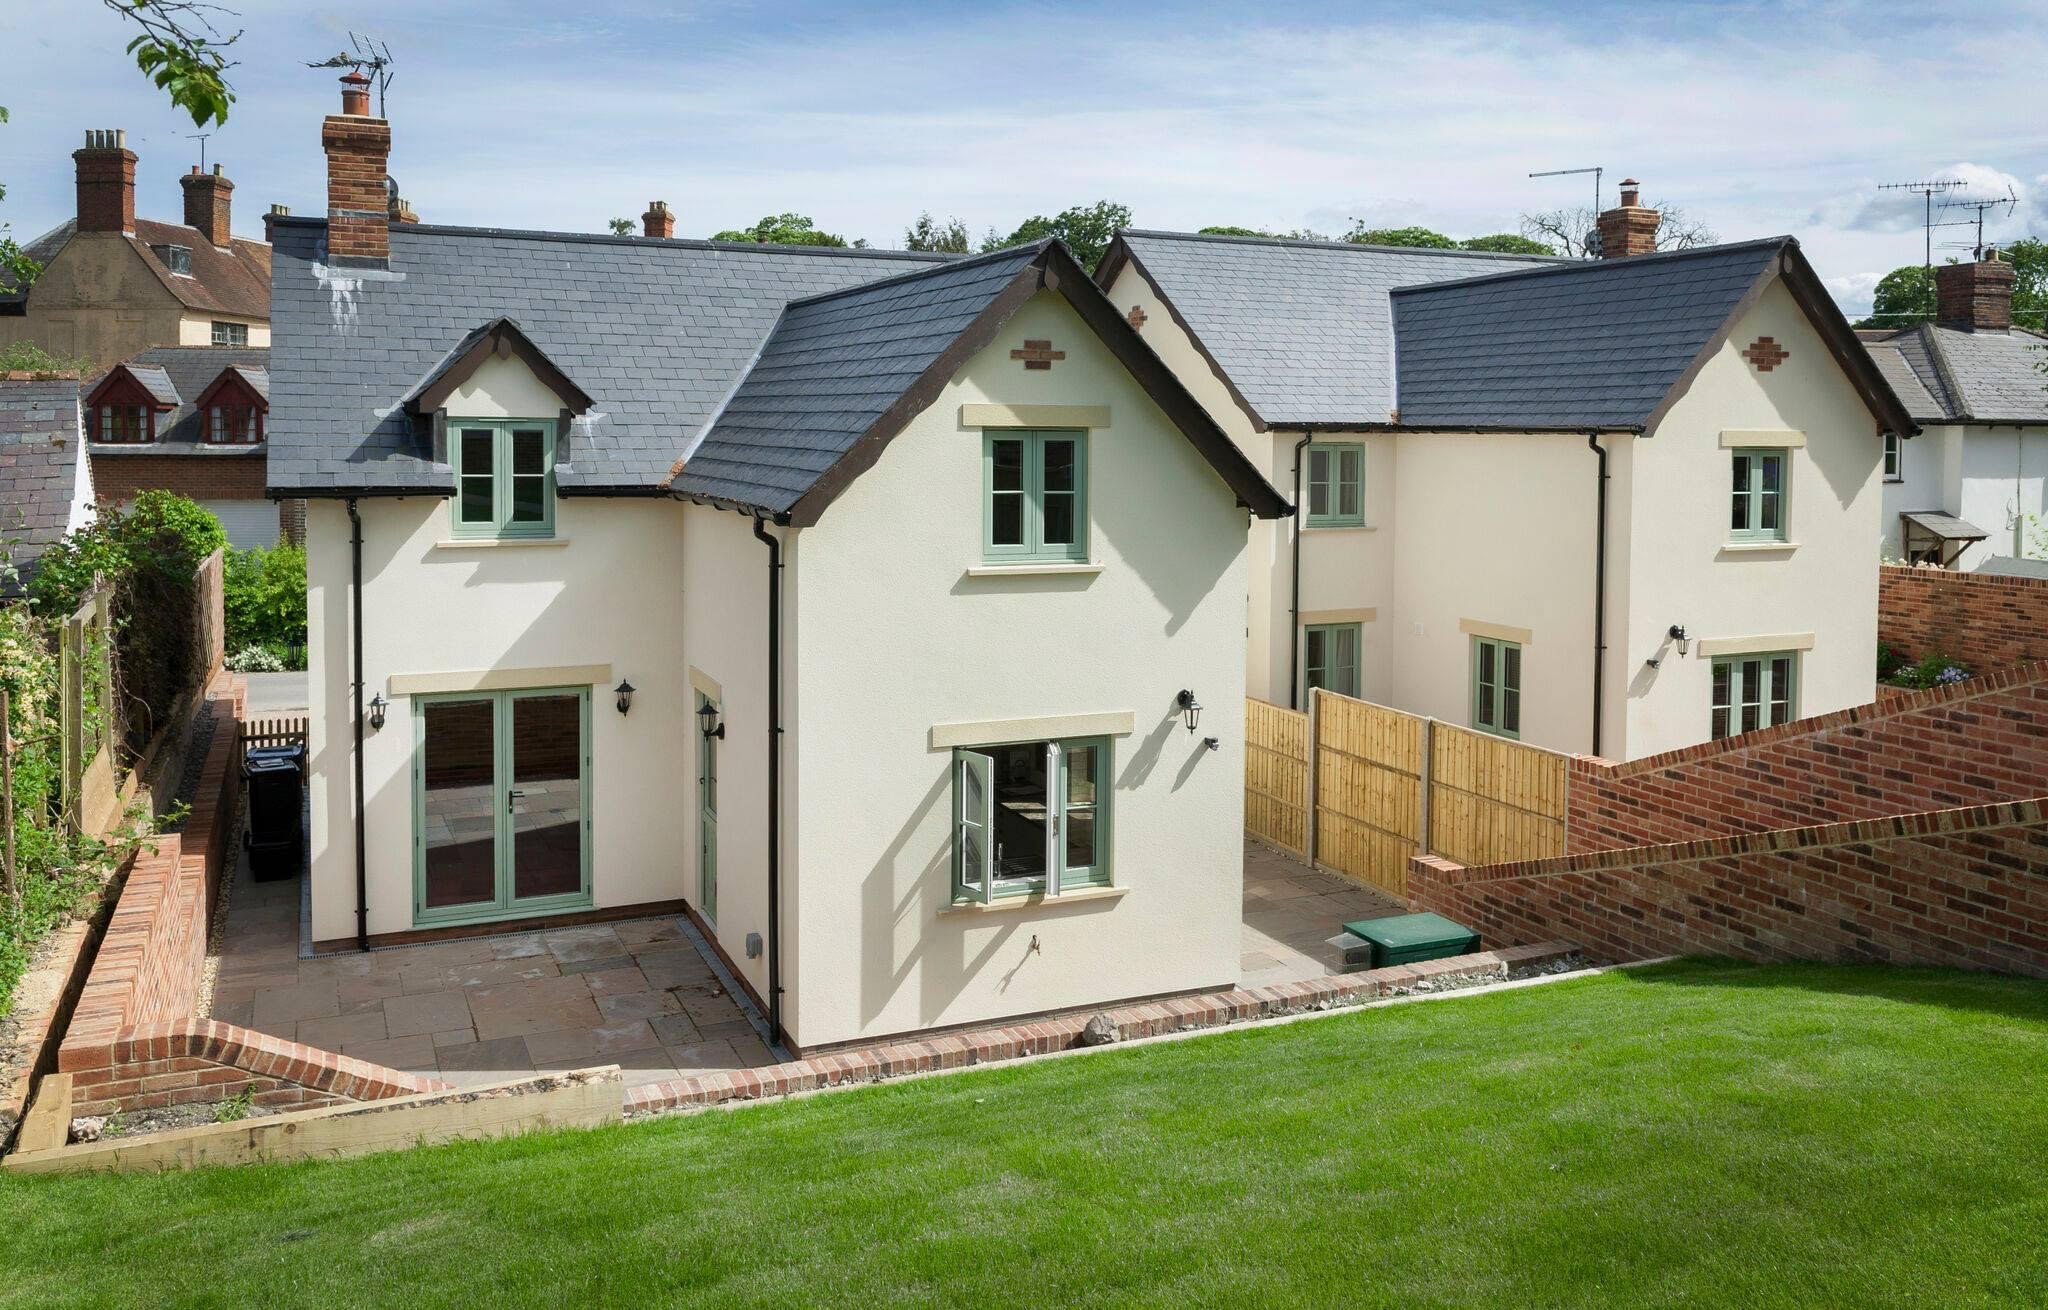 Why Have Aluminium Windows Become Highly Sought-After?